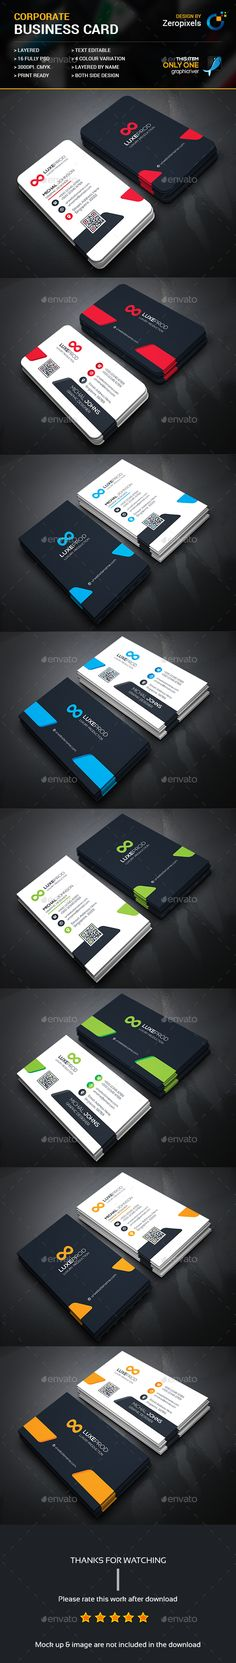 Modern Business Card Bundle - #Business Cards Print Templates Download here: https://graphicriver.net/item/modern-business-card-bundle/17126335? reff=Classicdesignp